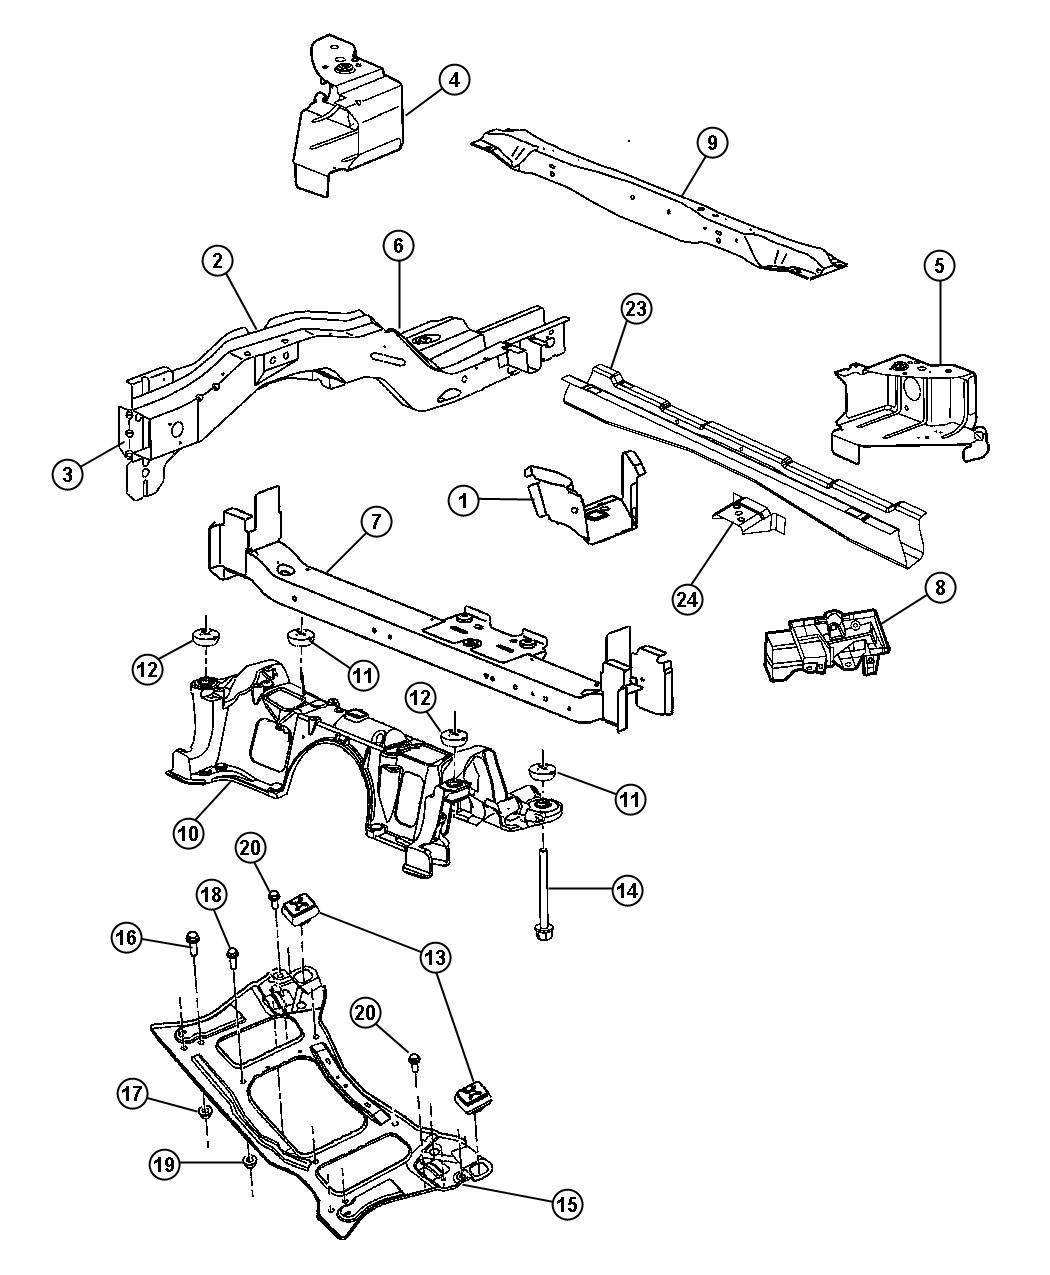 Chrysler Town & Country Bracket. Bumper to frame rail